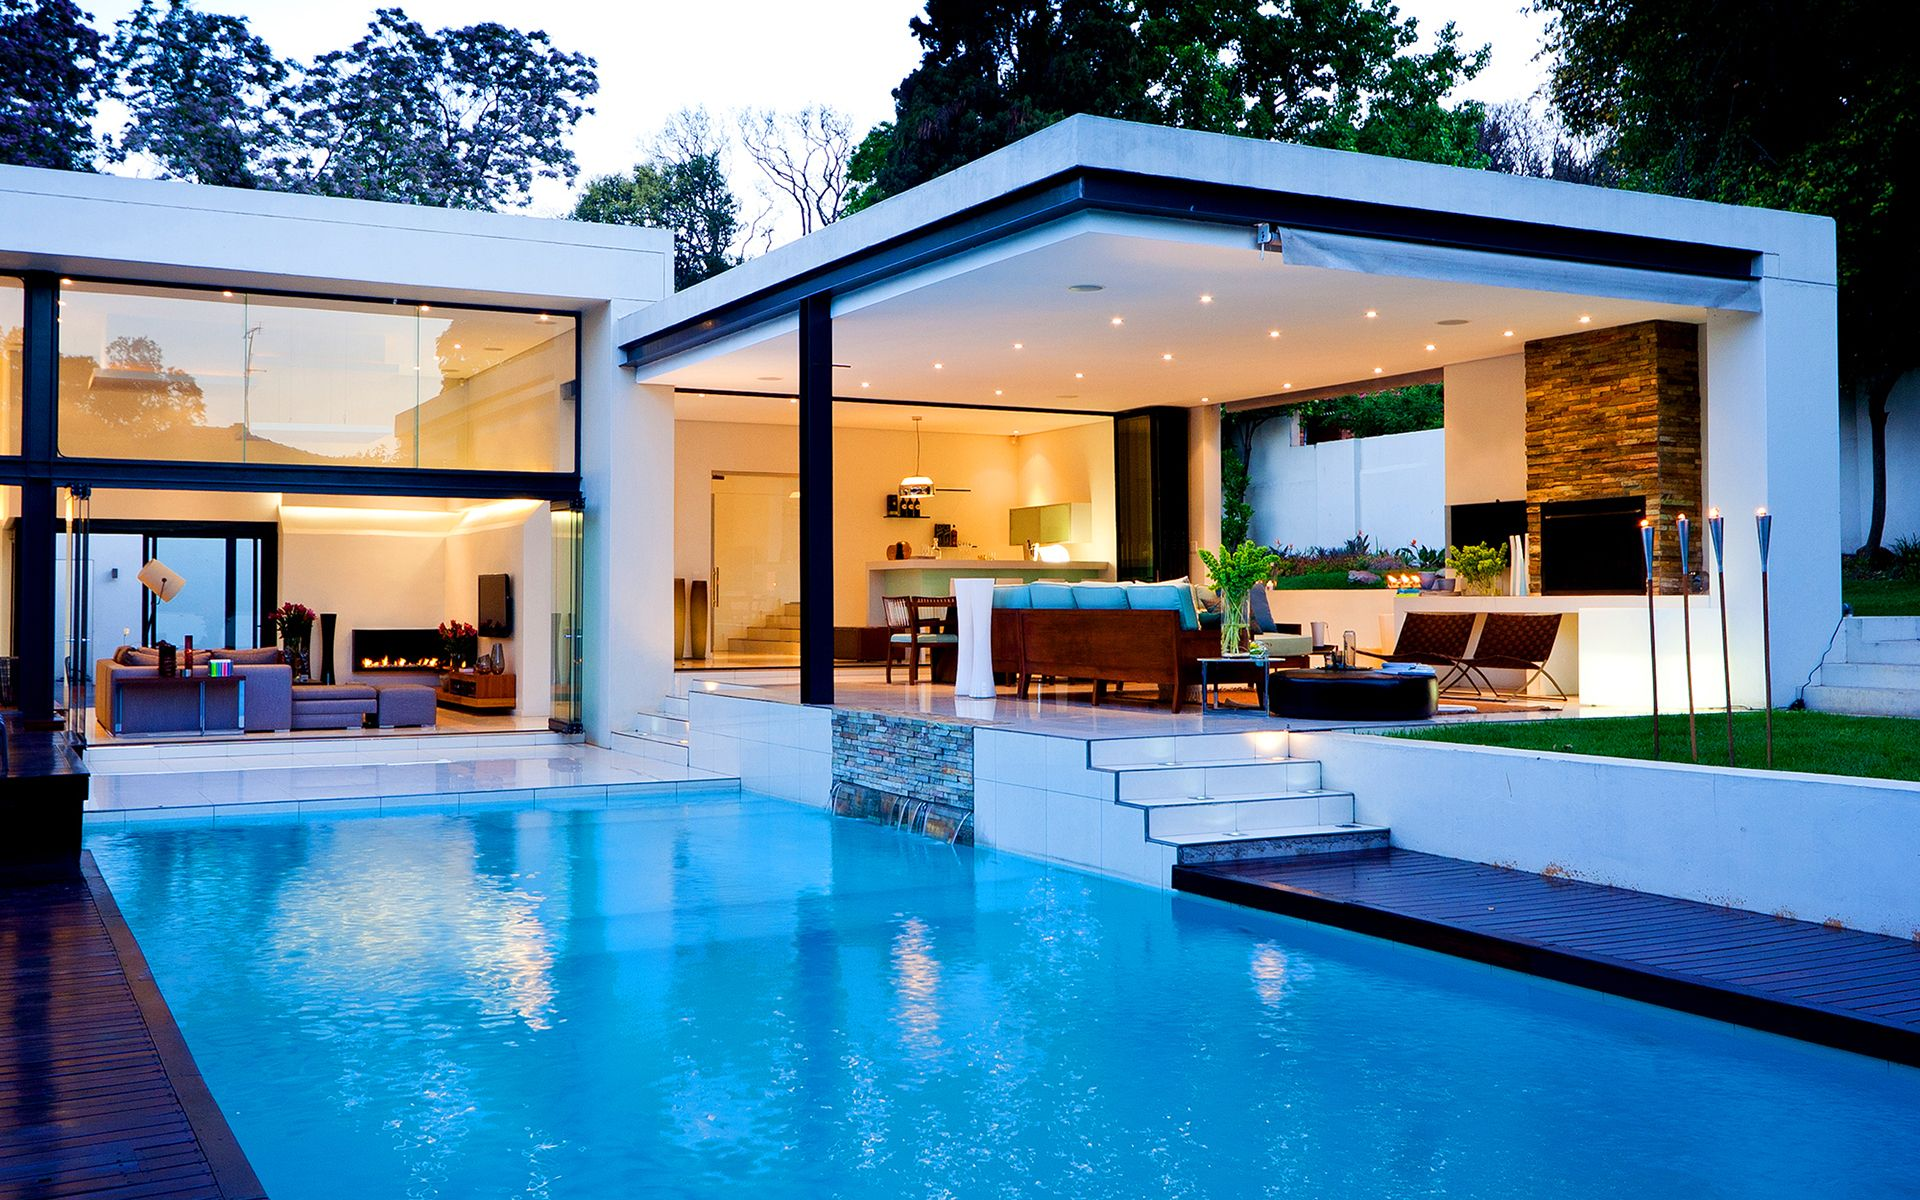 homes with pools Luxury house with pool Wallpapers Pictures 1920x1200